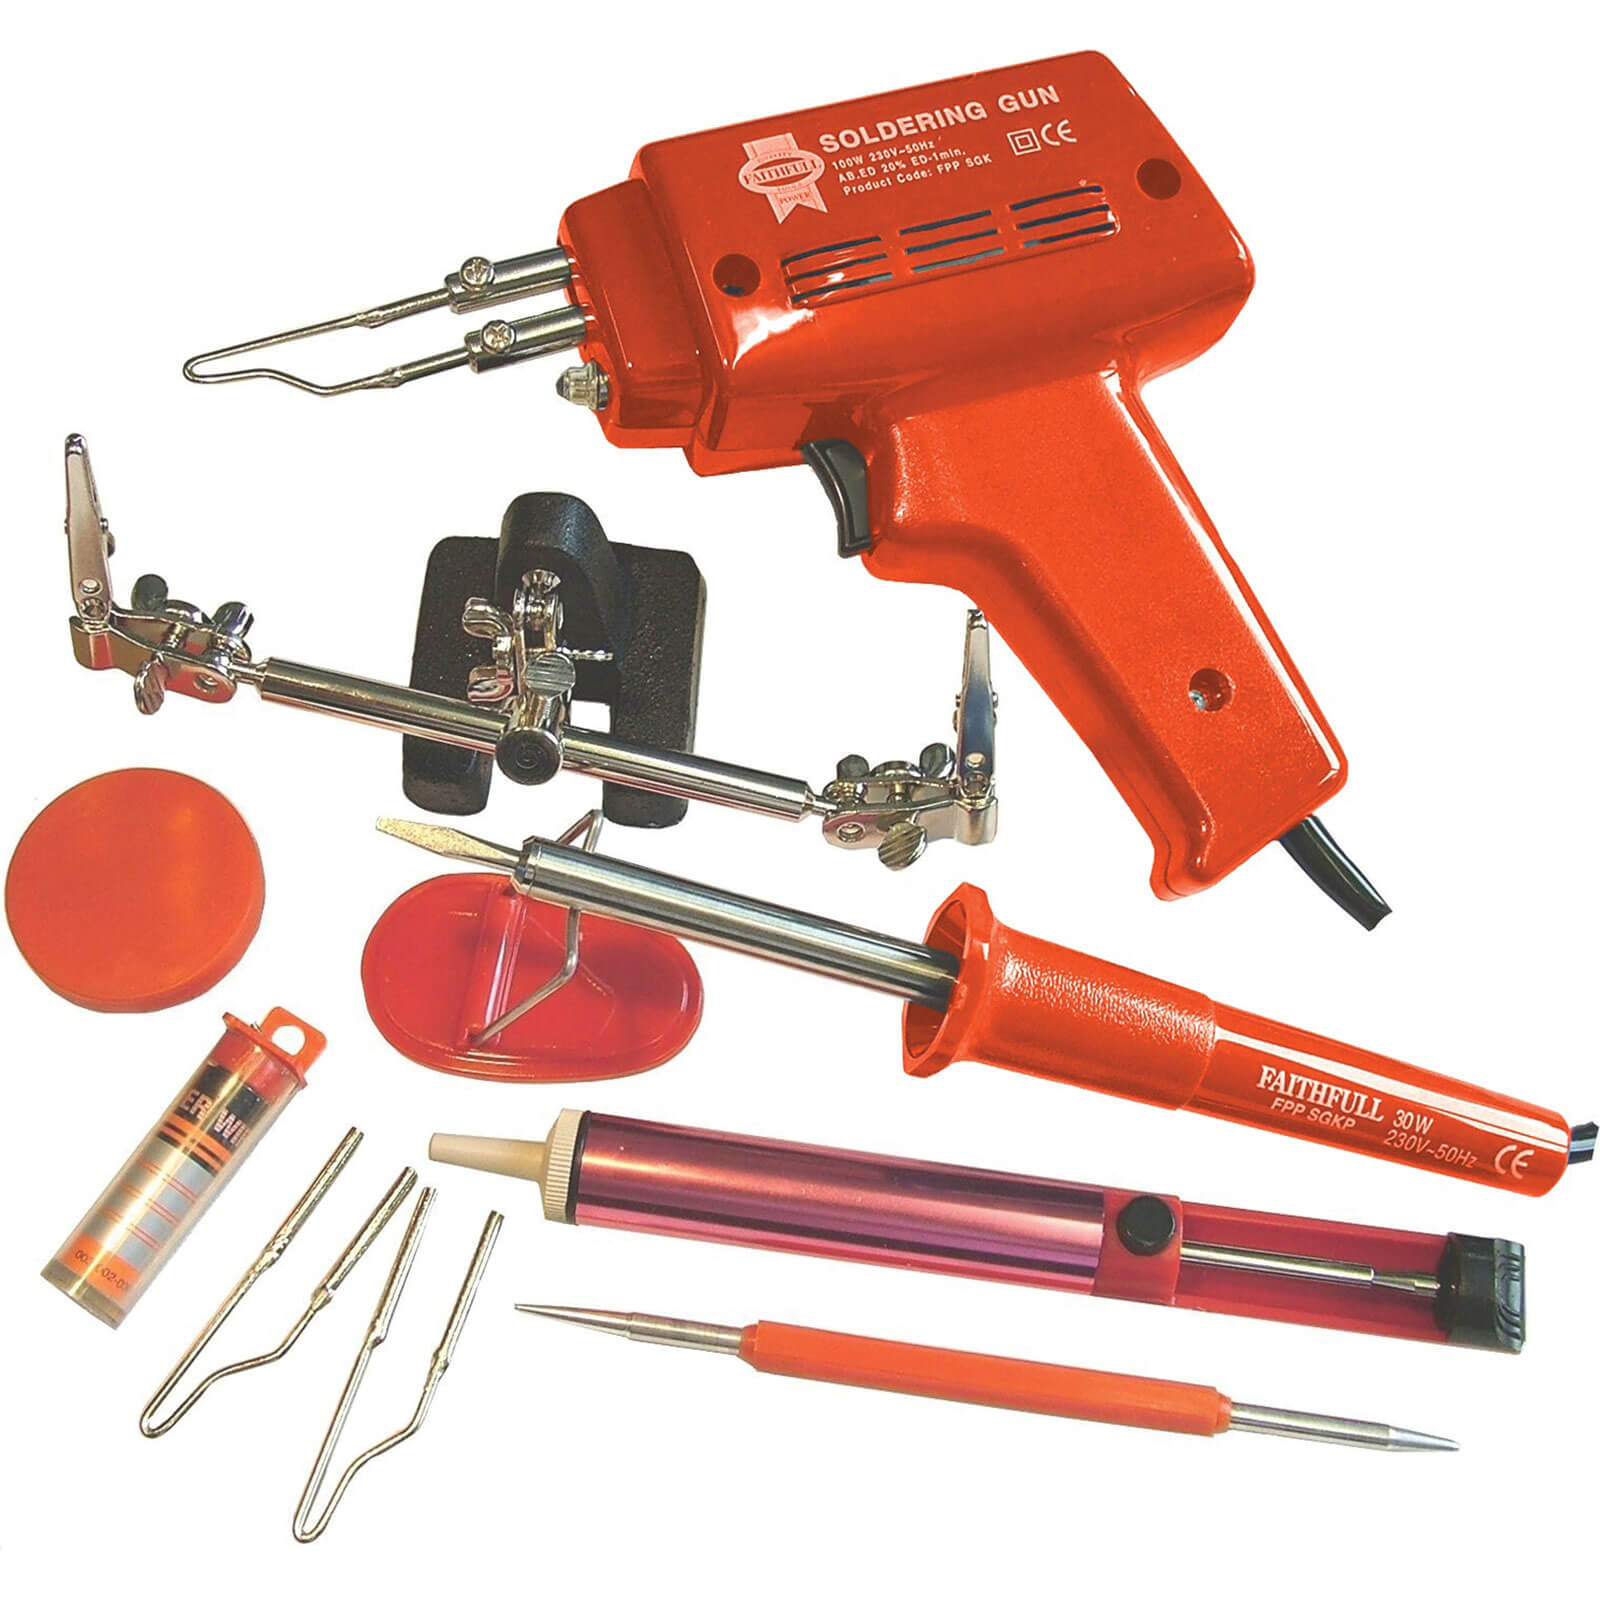 buy cheap soldering iron kit compare power tools prices for best uk deals. Black Bedroom Furniture Sets. Home Design Ideas